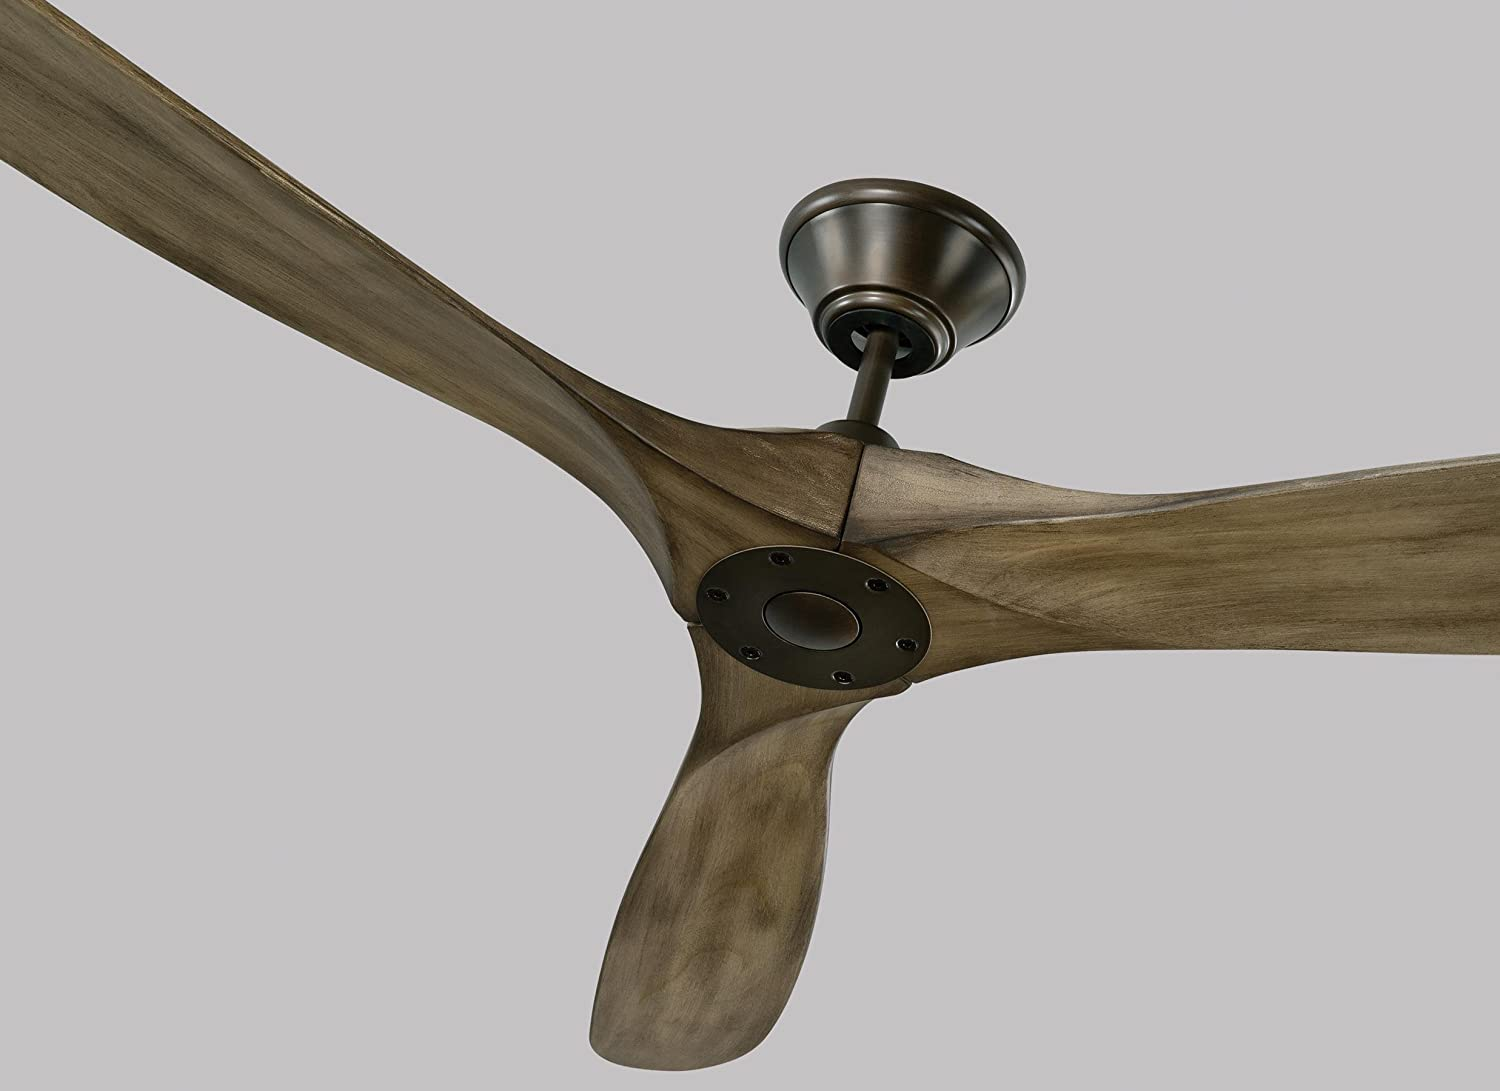 bayview inch ceiling hunter review fan kit with provencal light